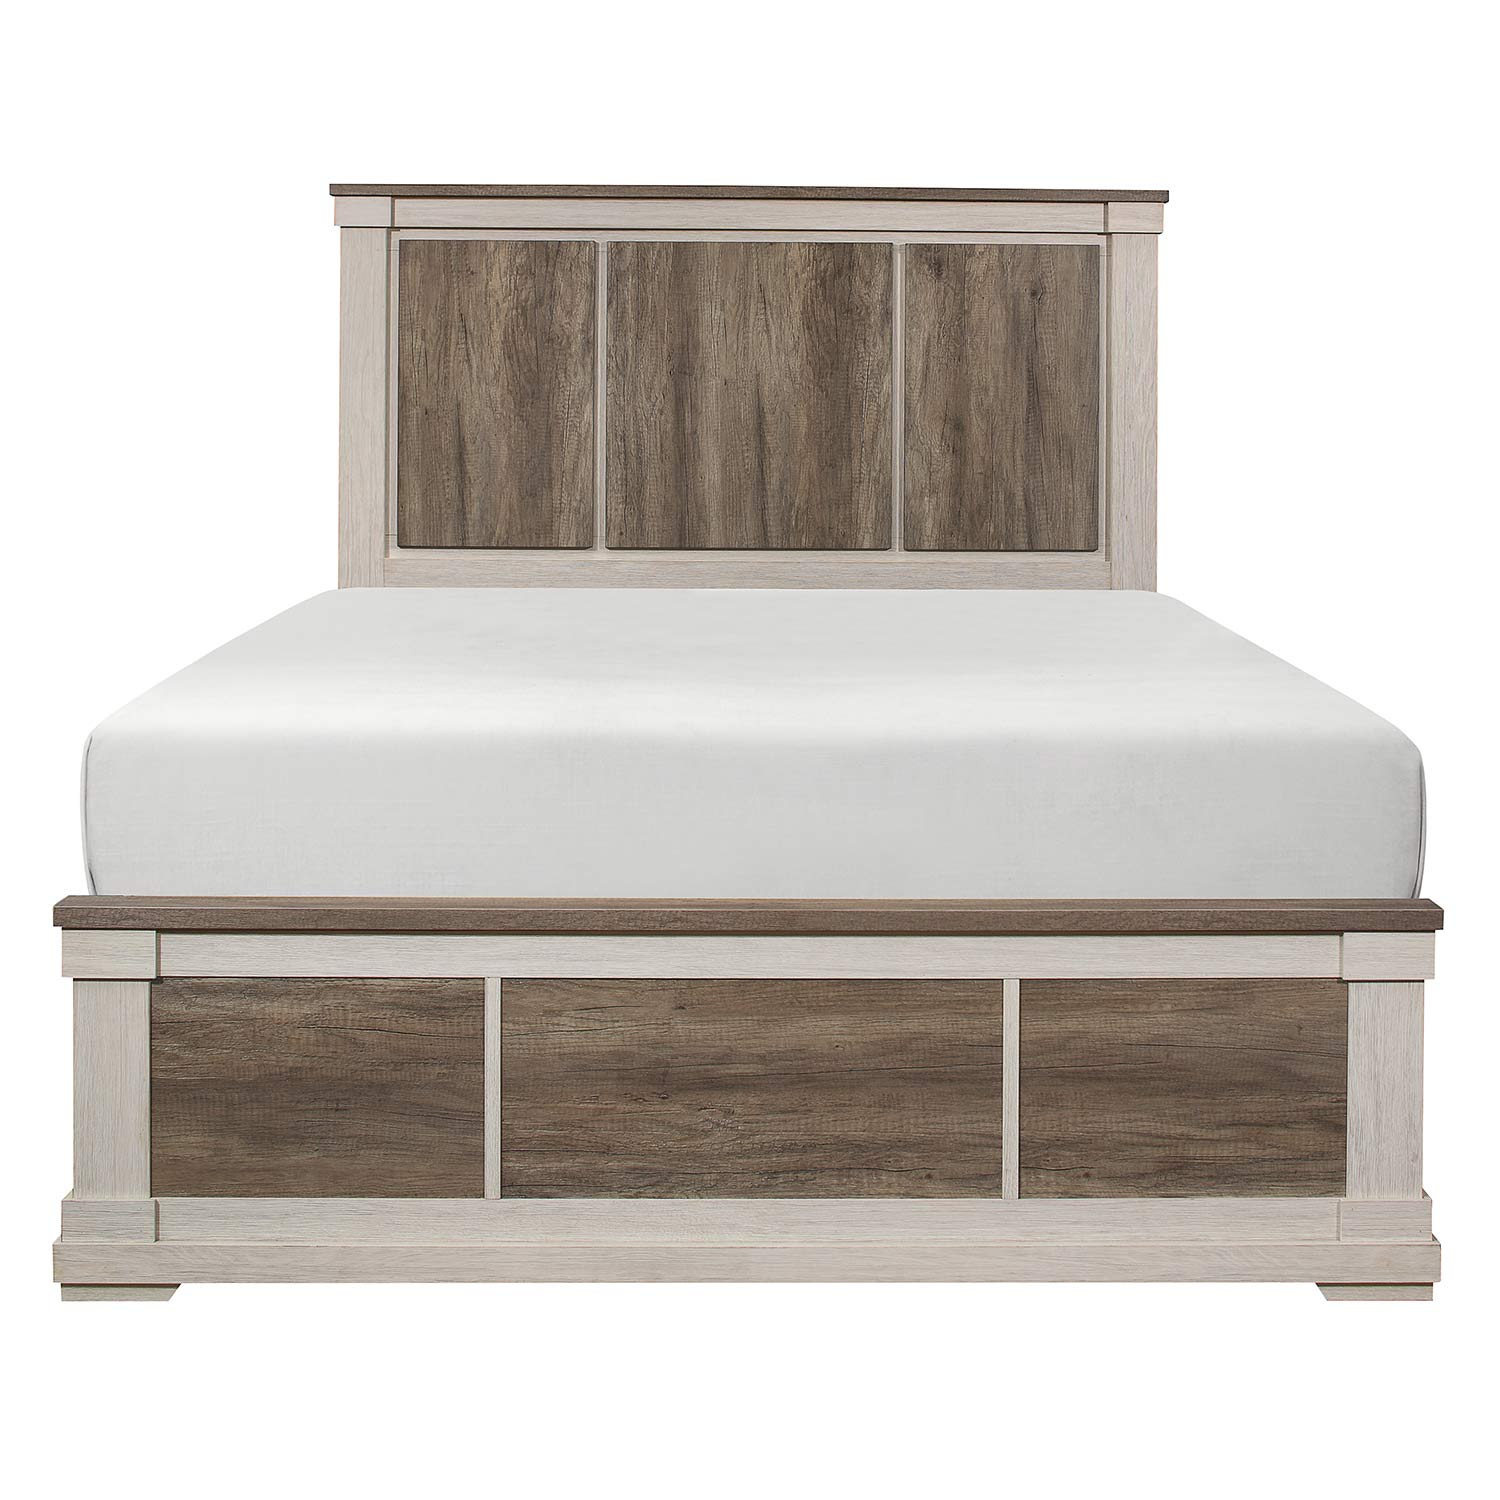 Homelegance Arcadia Bed - White Framing and Variegated Gray Printed Faux-Wood Grain Veneer